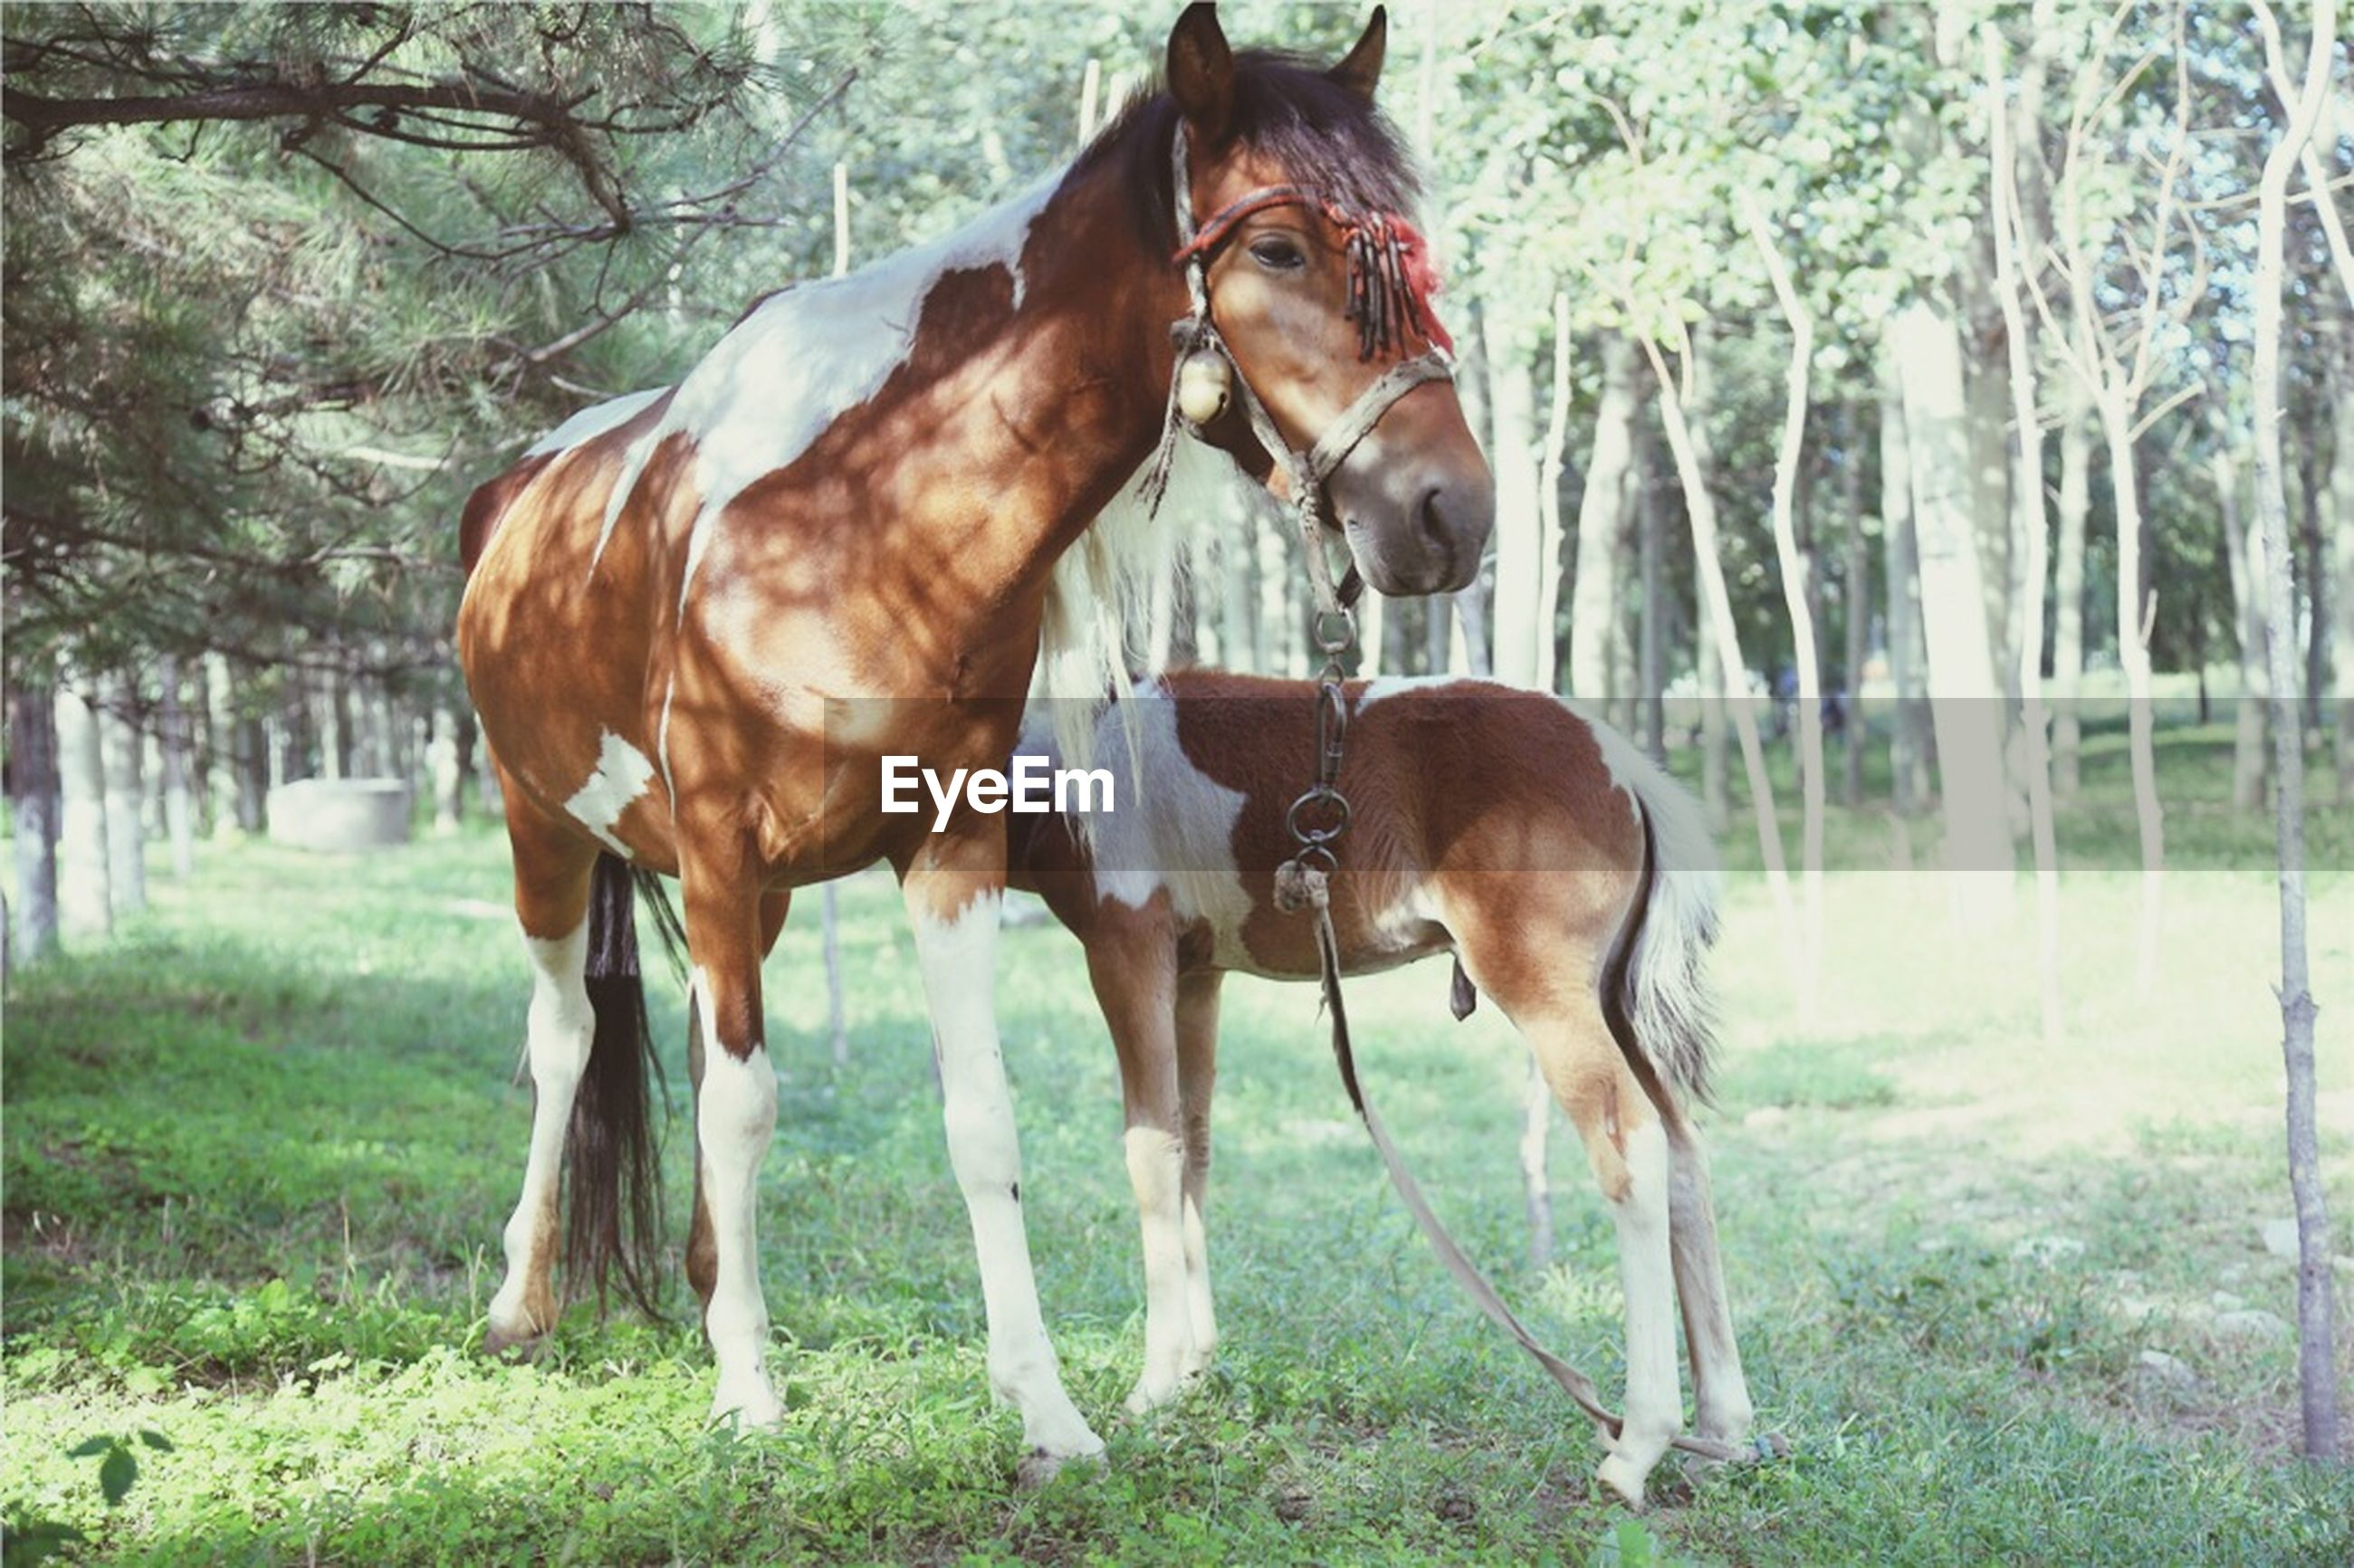 animal themes, mammal, domestic animals, horse, standing, grass, brown, field, two animals, livestock, full length, herbivorous, tree, nature, side view, one animal, day, outdoors, landscape, animal